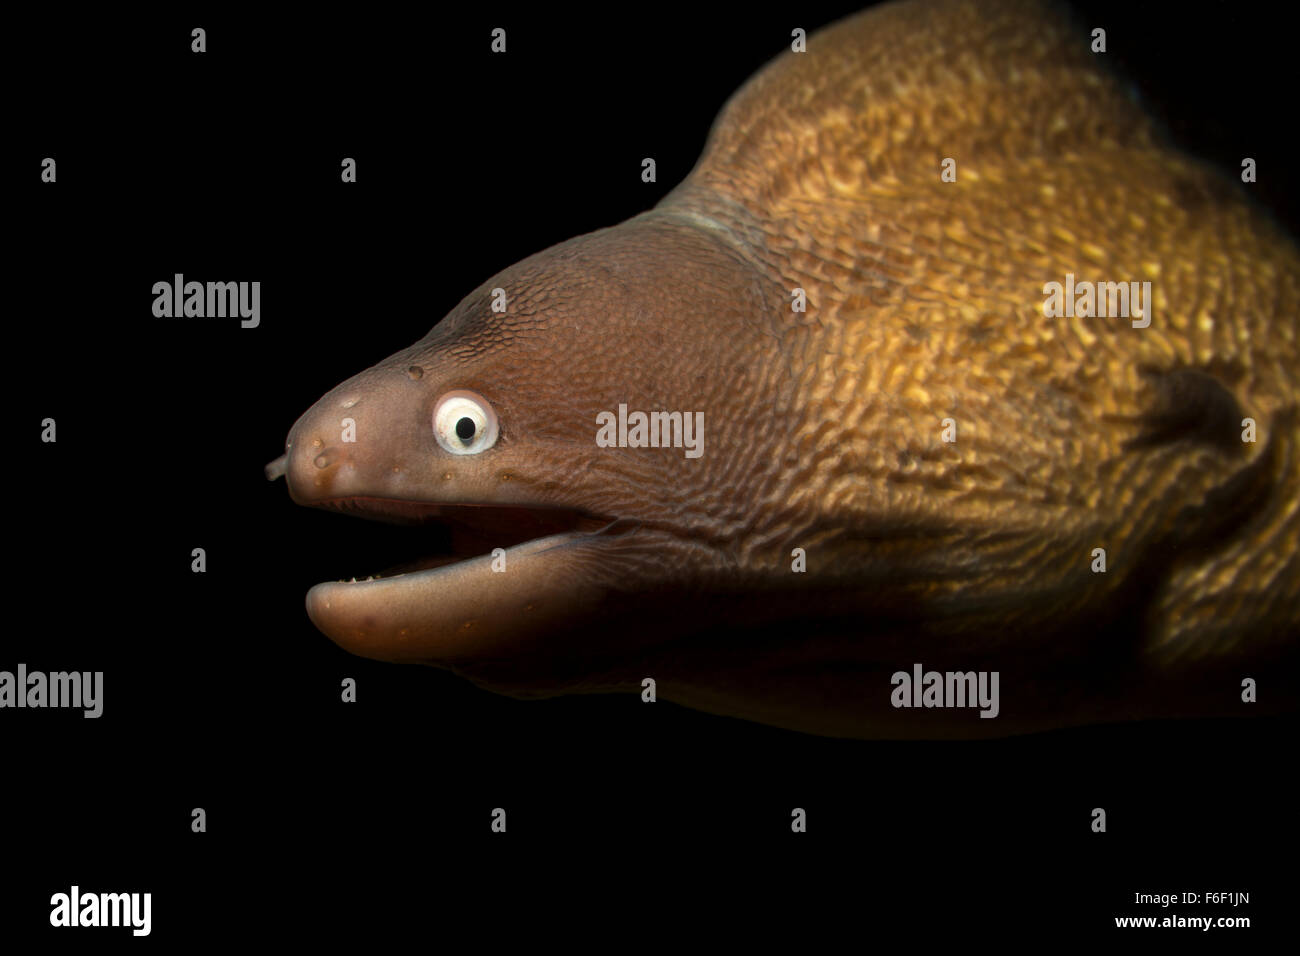 Greyface Moray, Siderea prosopeion, Ambon, Indonesia - Stock Image